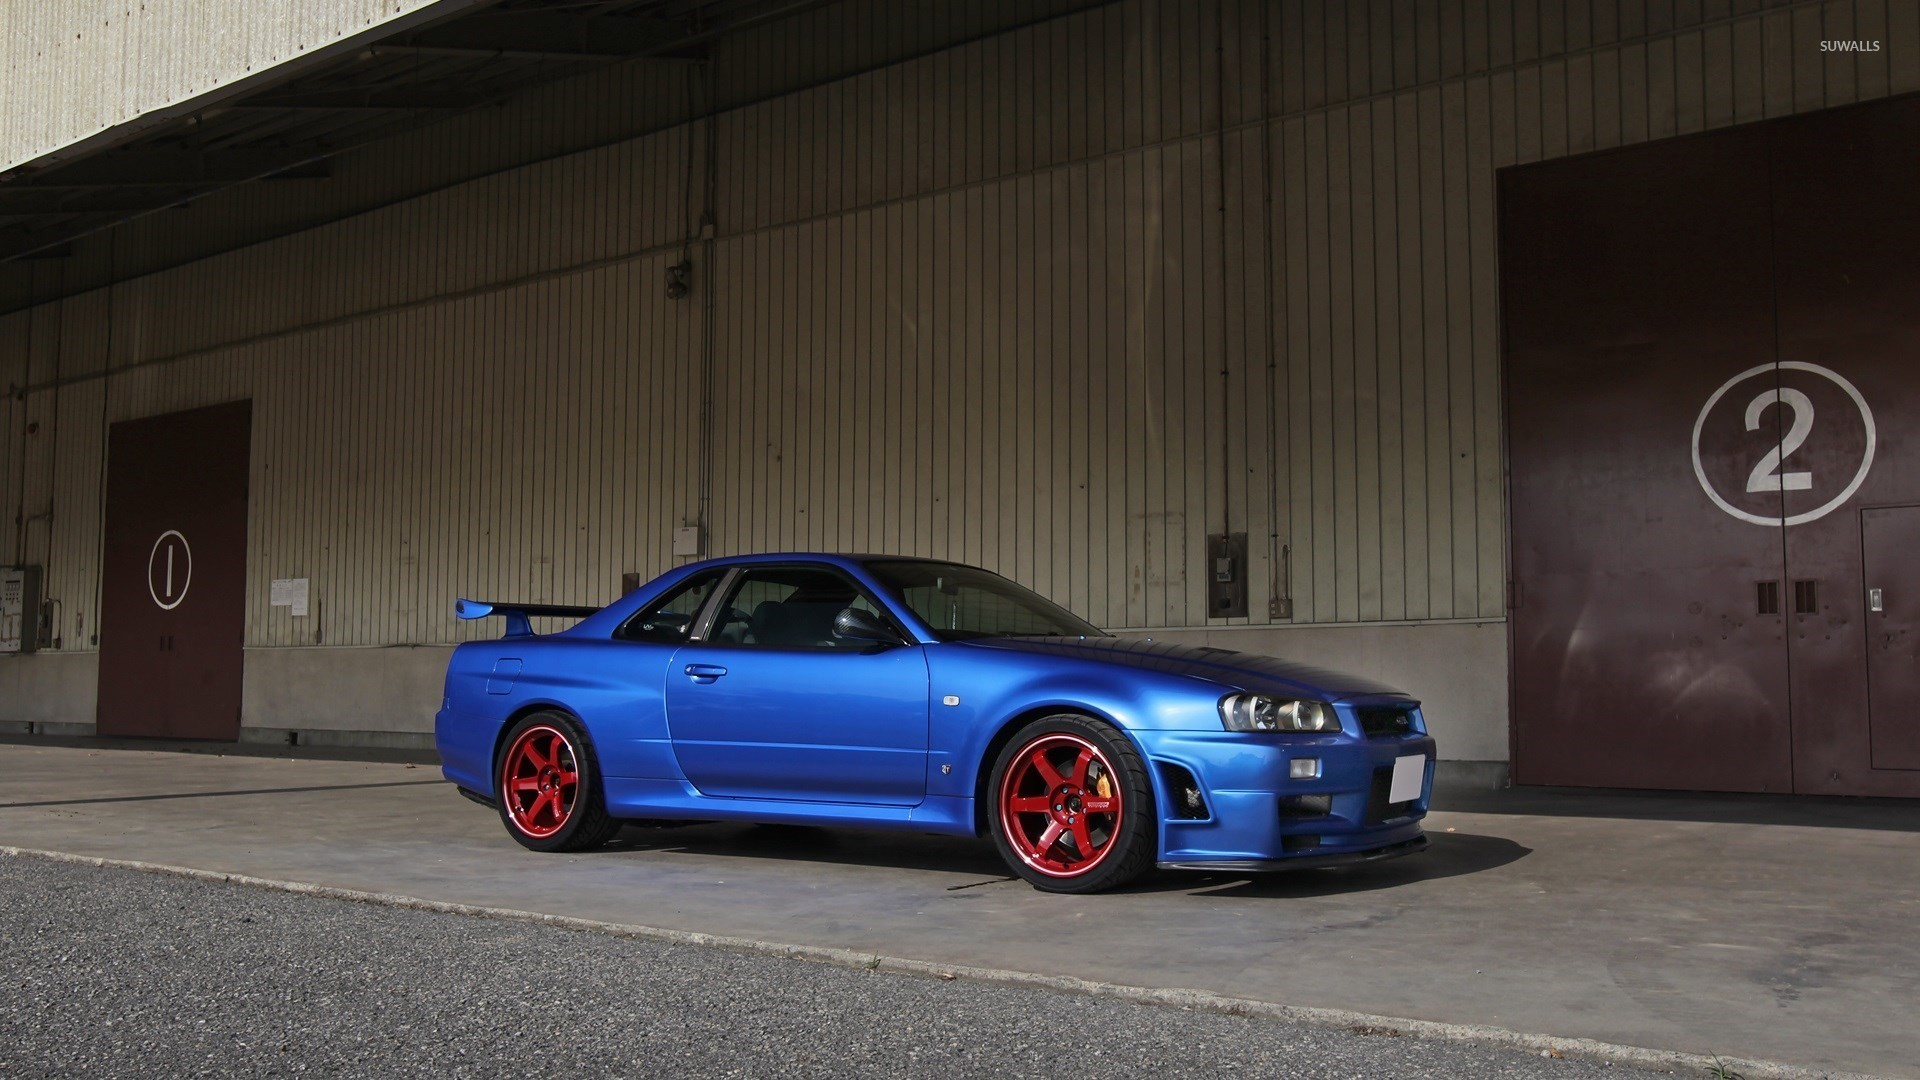 Blue Nissan Skyline Side View Wallpaper Car Wallpapers